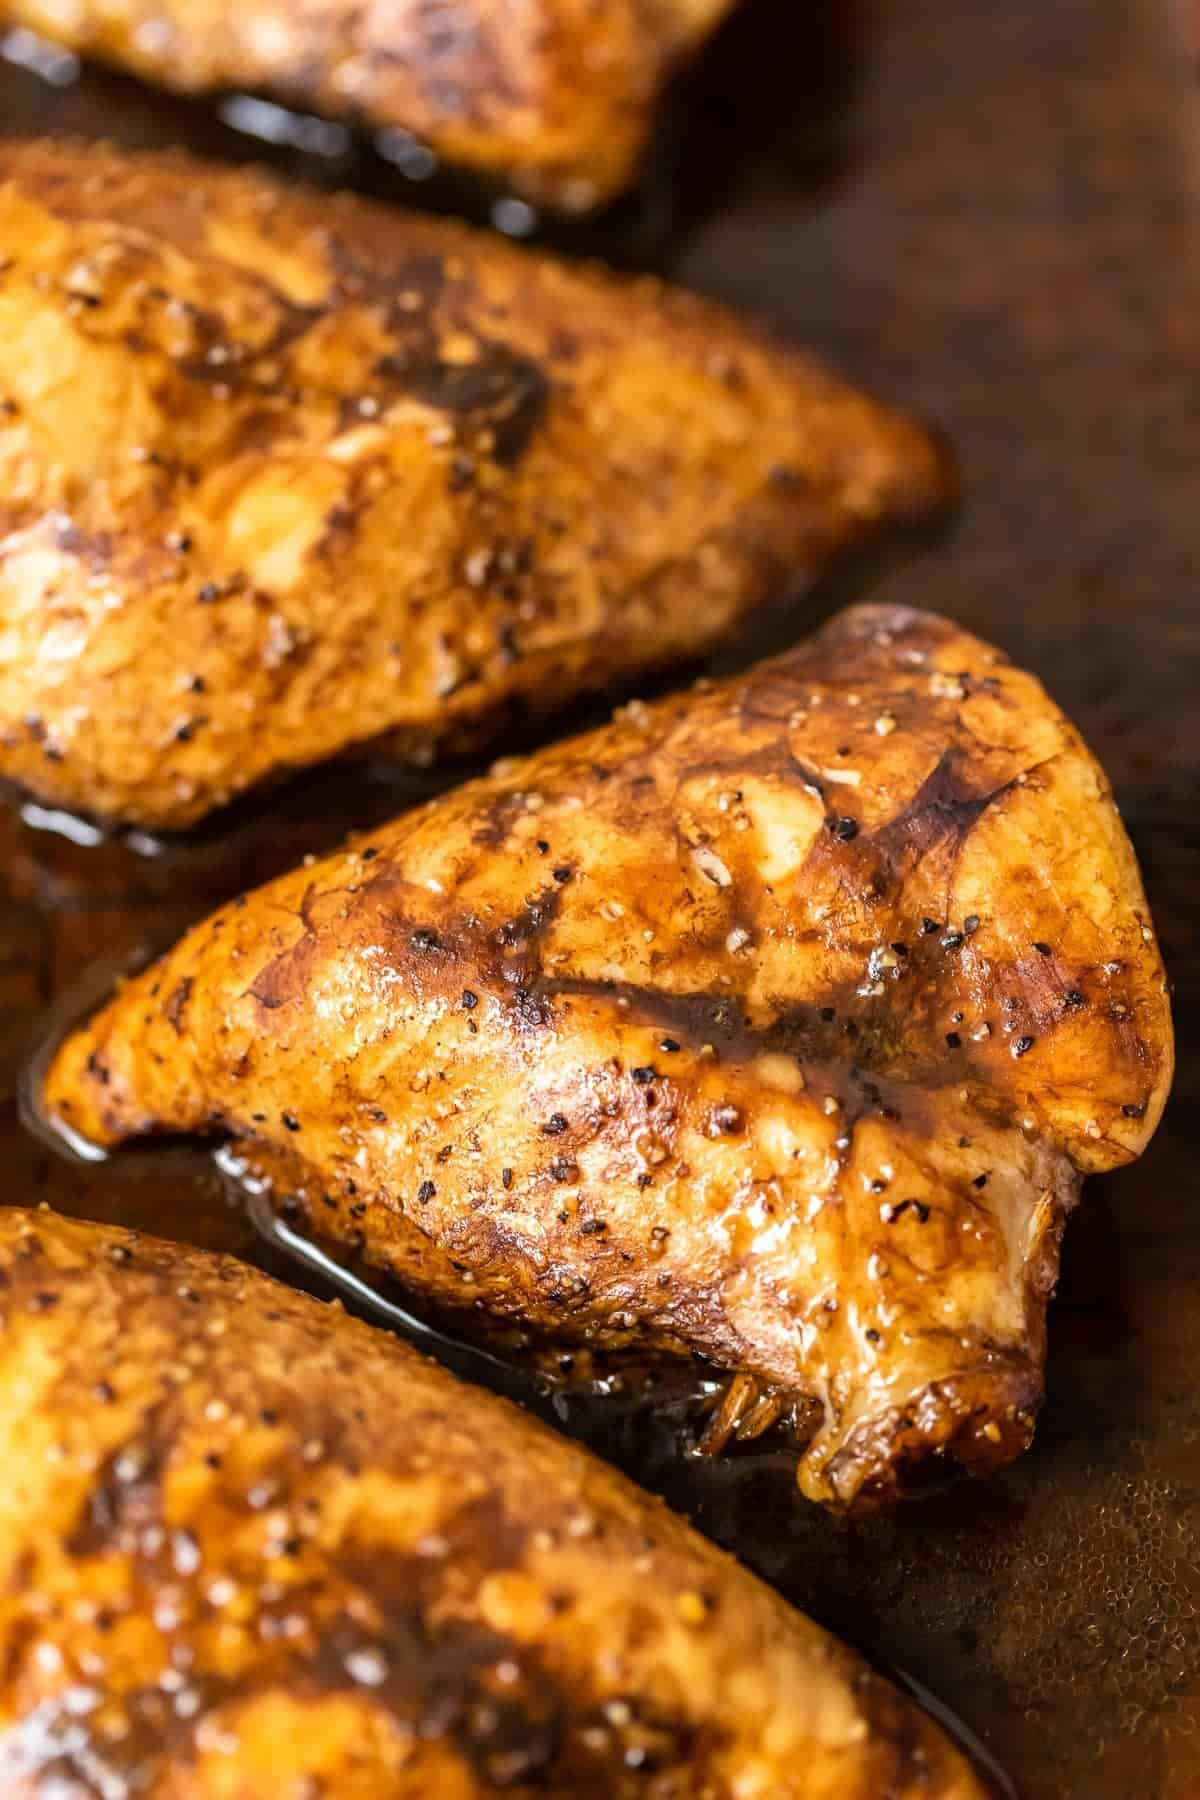 Marinated Baked Lemon Pepper Chicken is one of the BEST ways to cook Baked Chicken! This Lemon Pepper Chicken Recipe is so juicy, tender, and perfect! We have all the tips for how to bake chicken, and this special Marinade Recipe can't be beat!